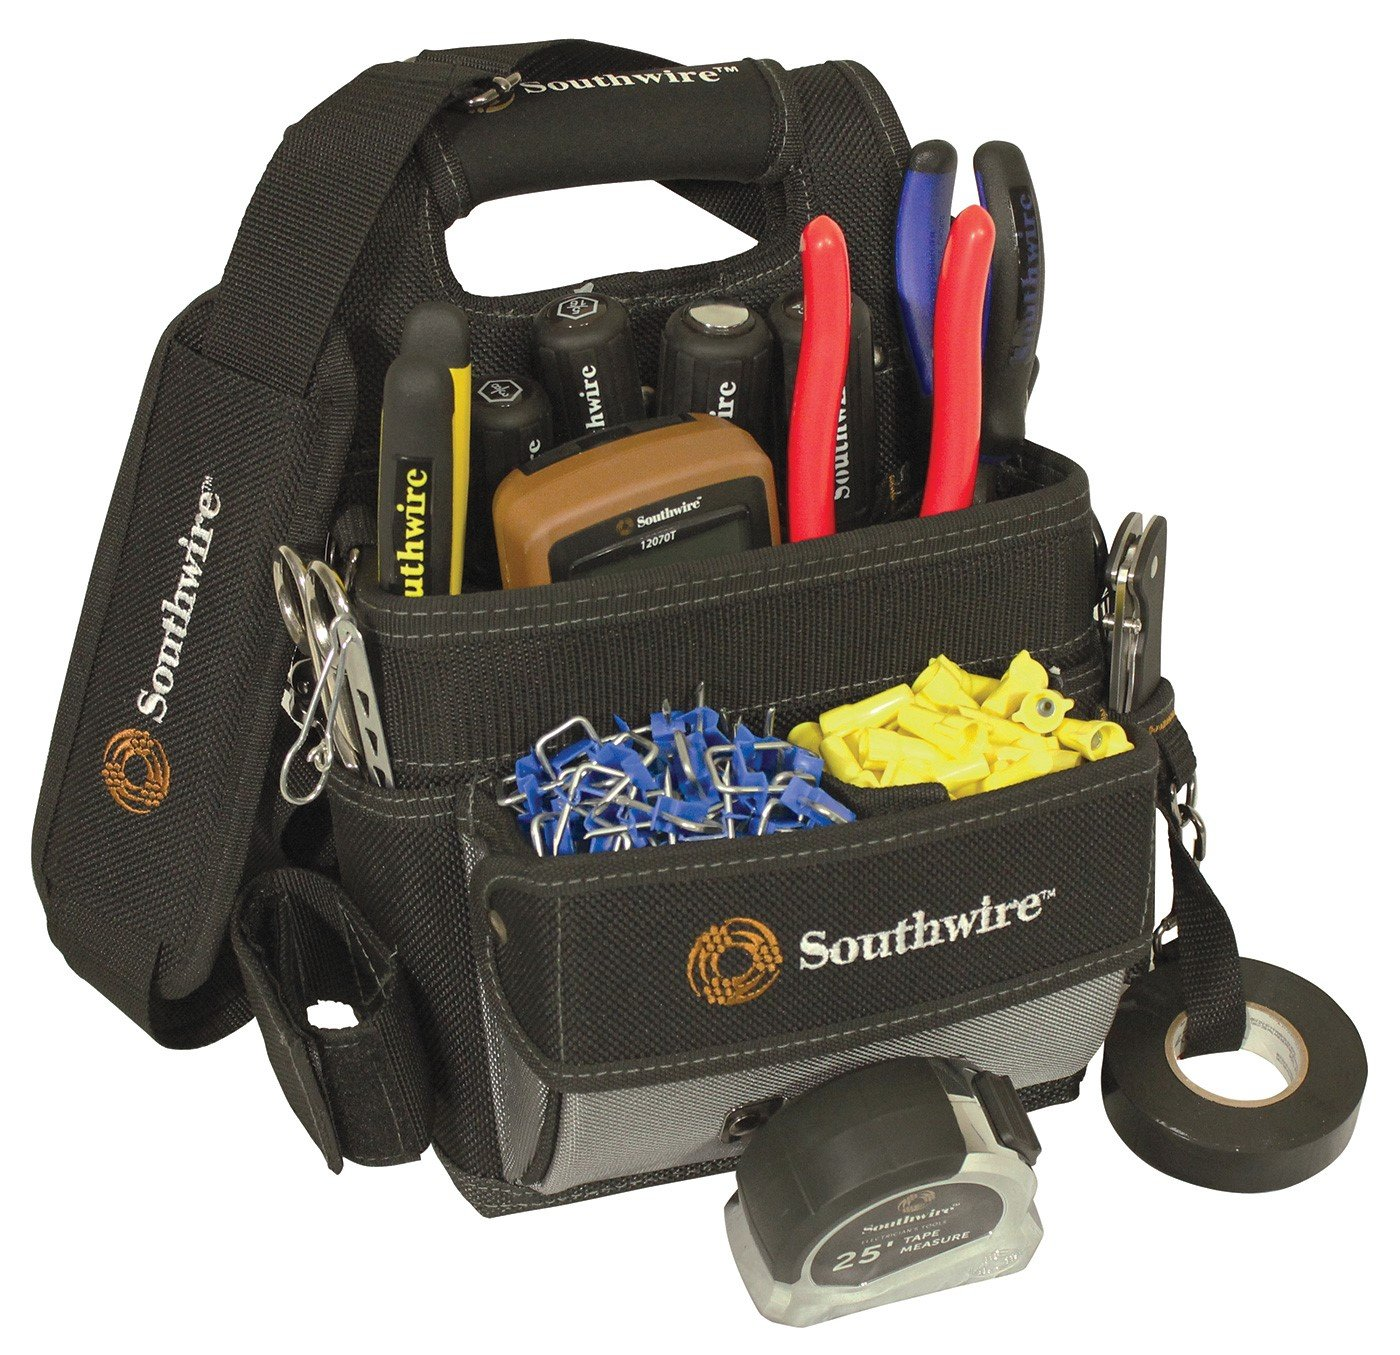 Southwire Tools & Equipment BAGESP Electrician\'s Shoulder Pouch Tool ...